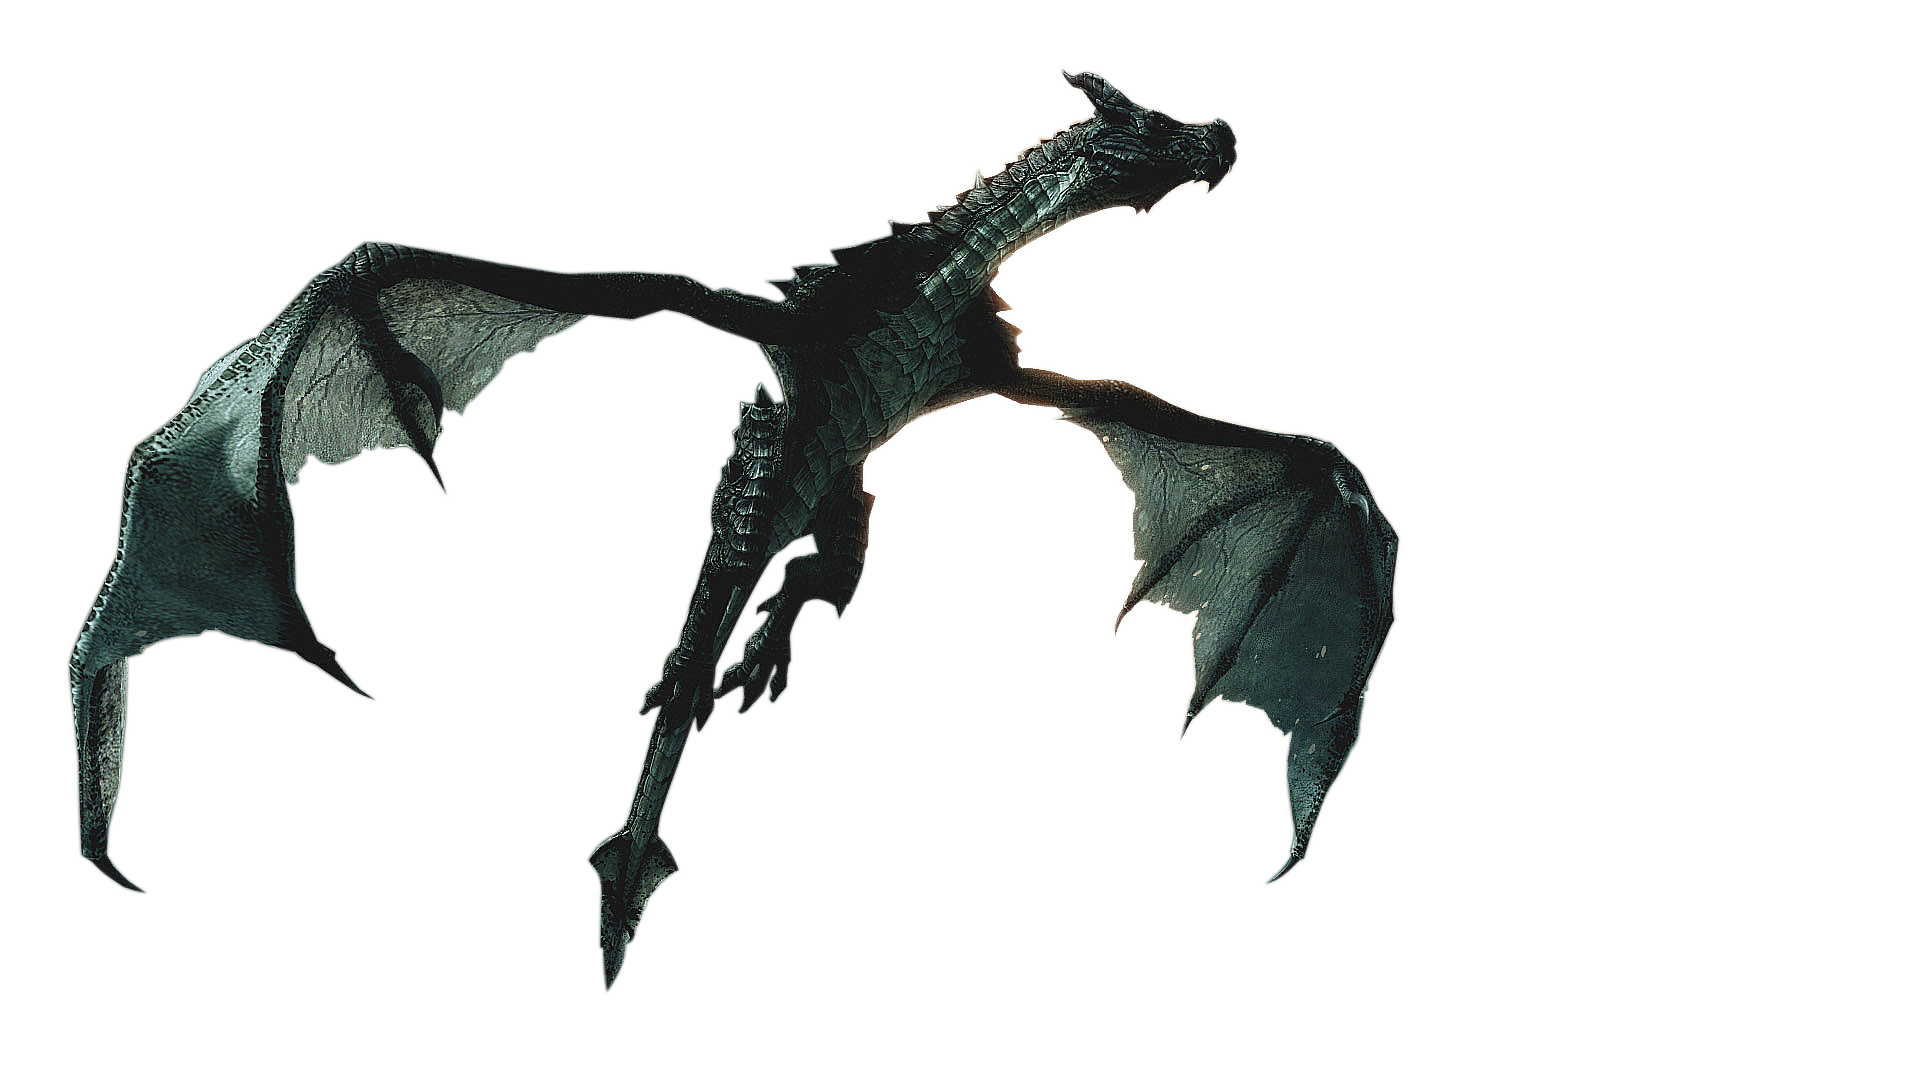 Game of thrones dragon png. Image arts